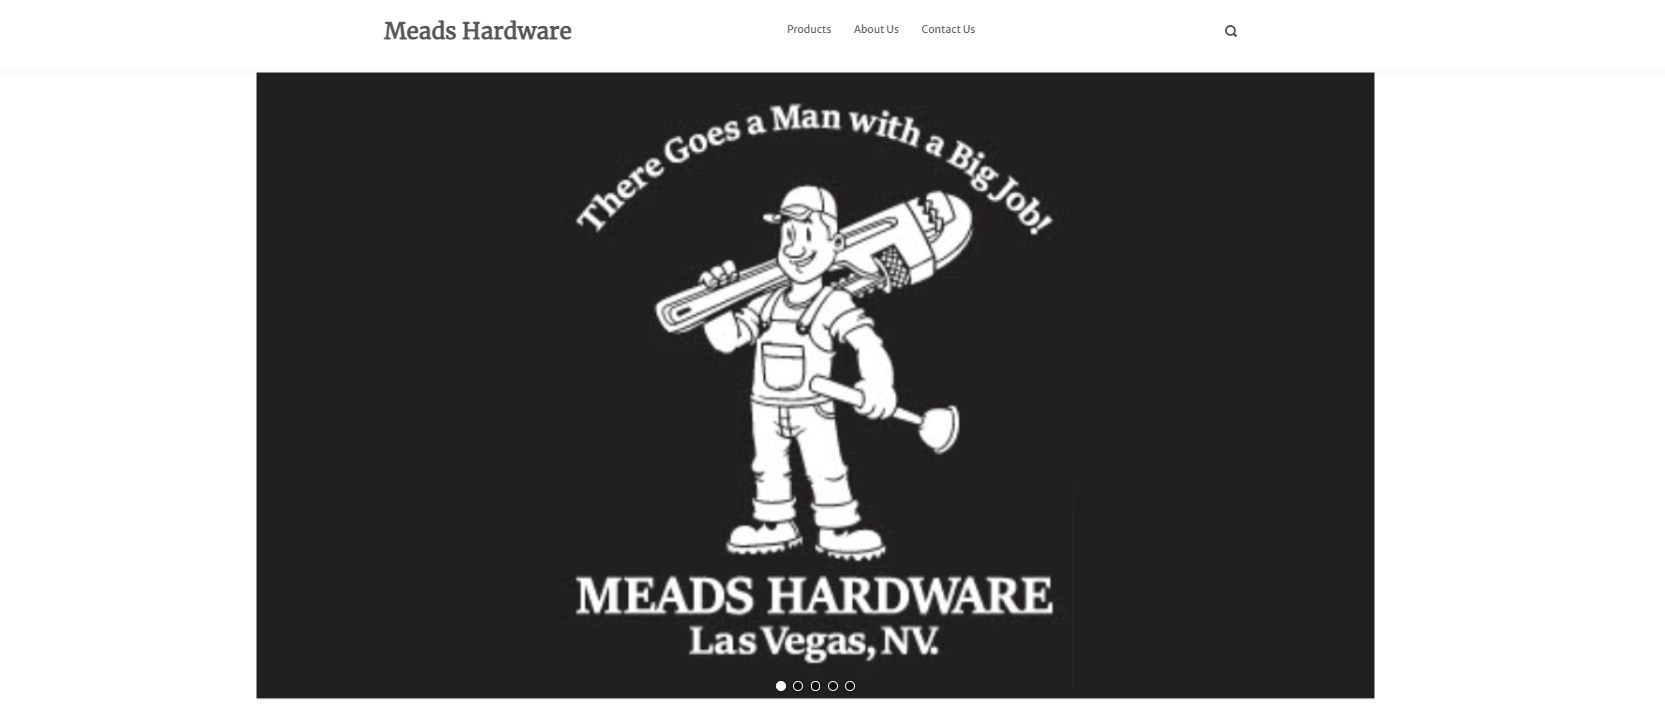 Meads Hardware